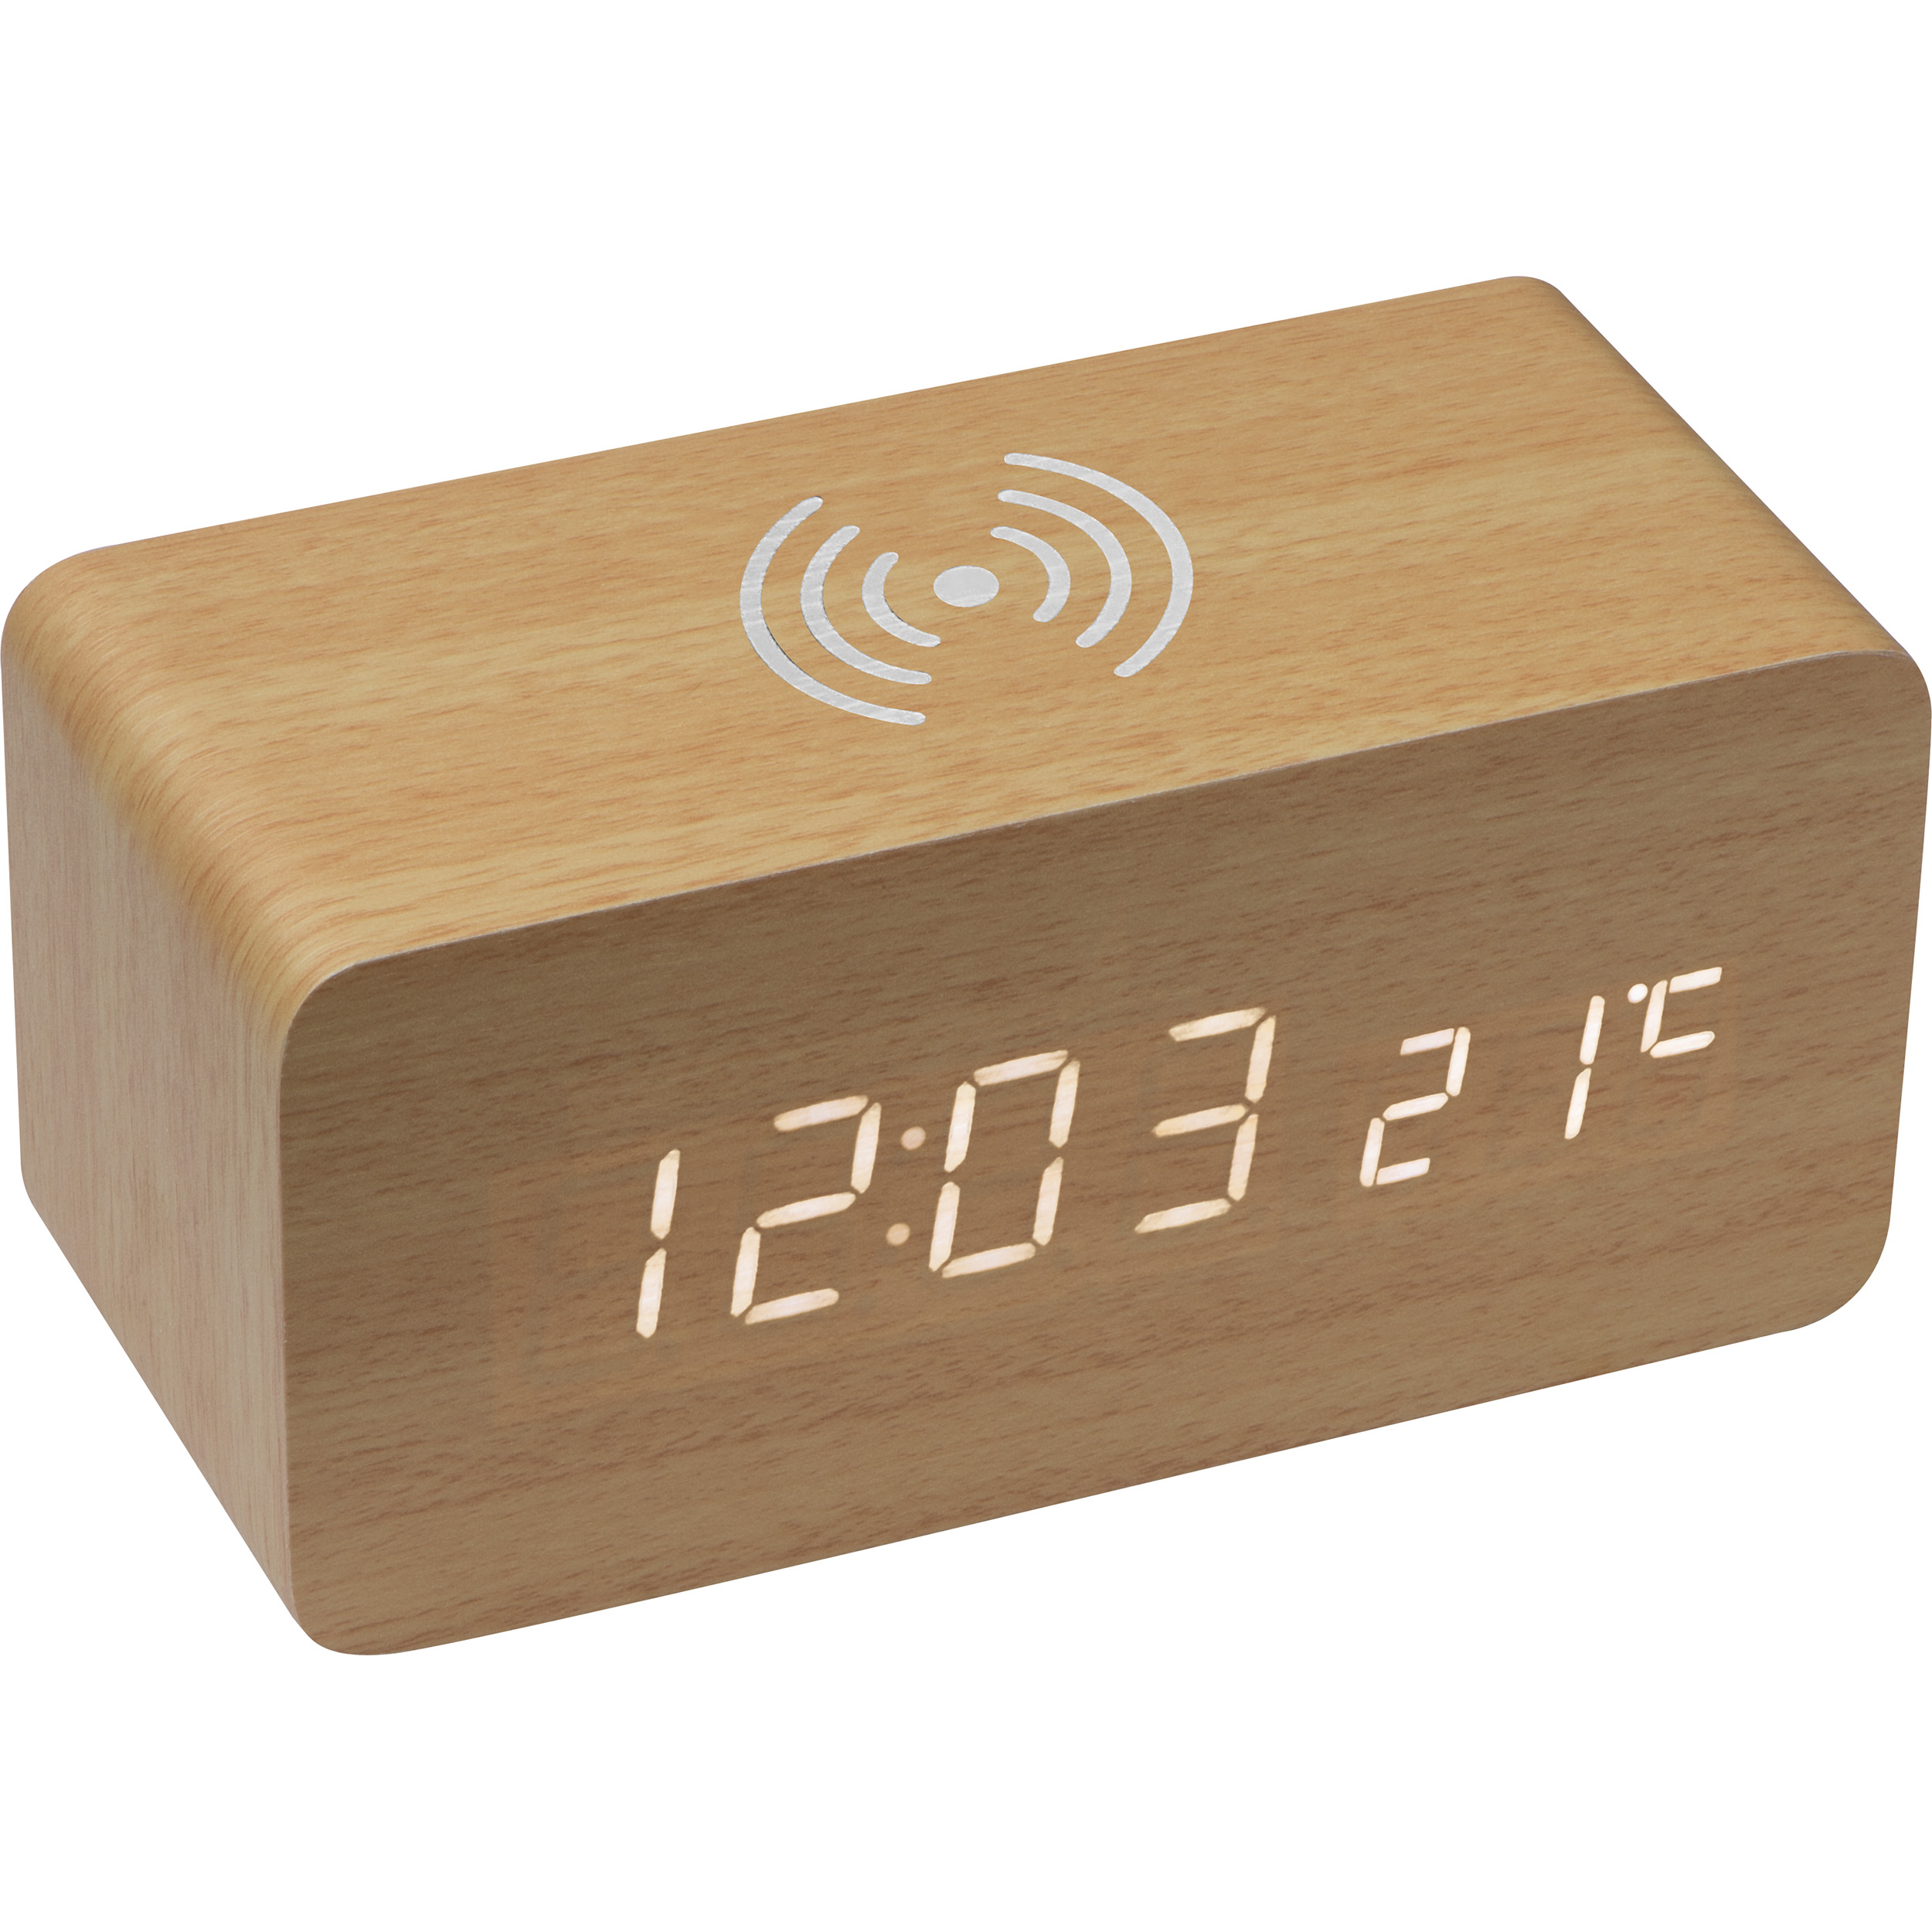 Desk clock with integrated wireless charger